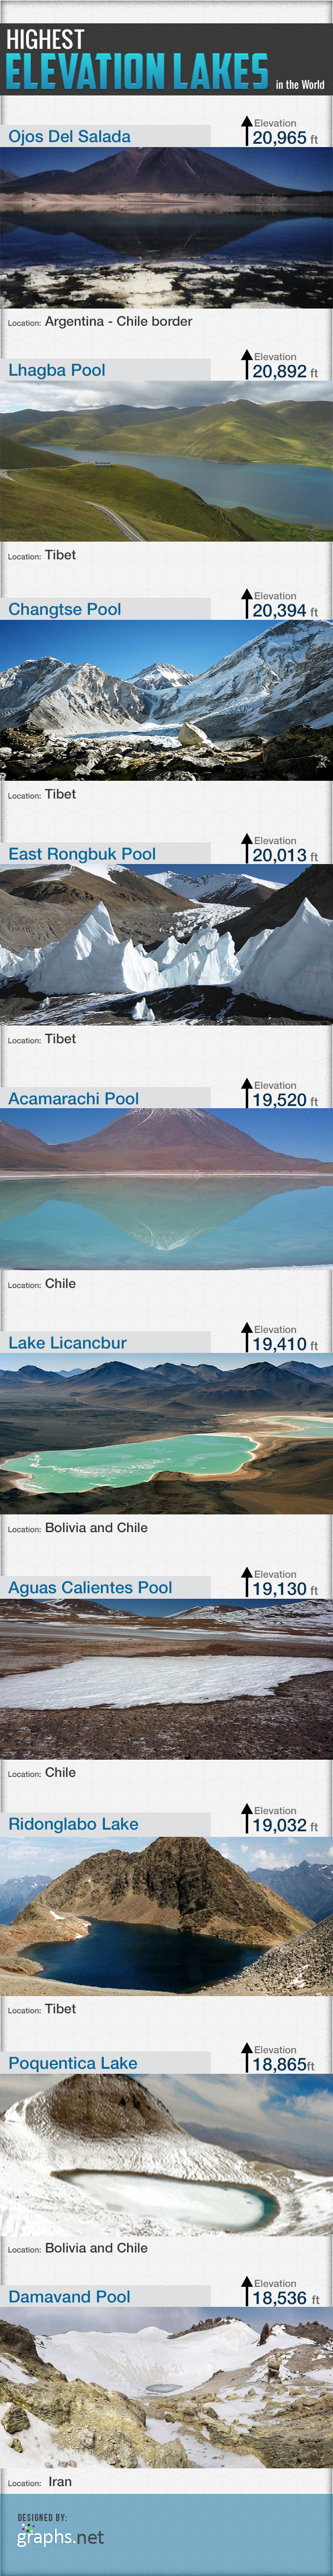 Highest-elevation-lakes-in-the-World